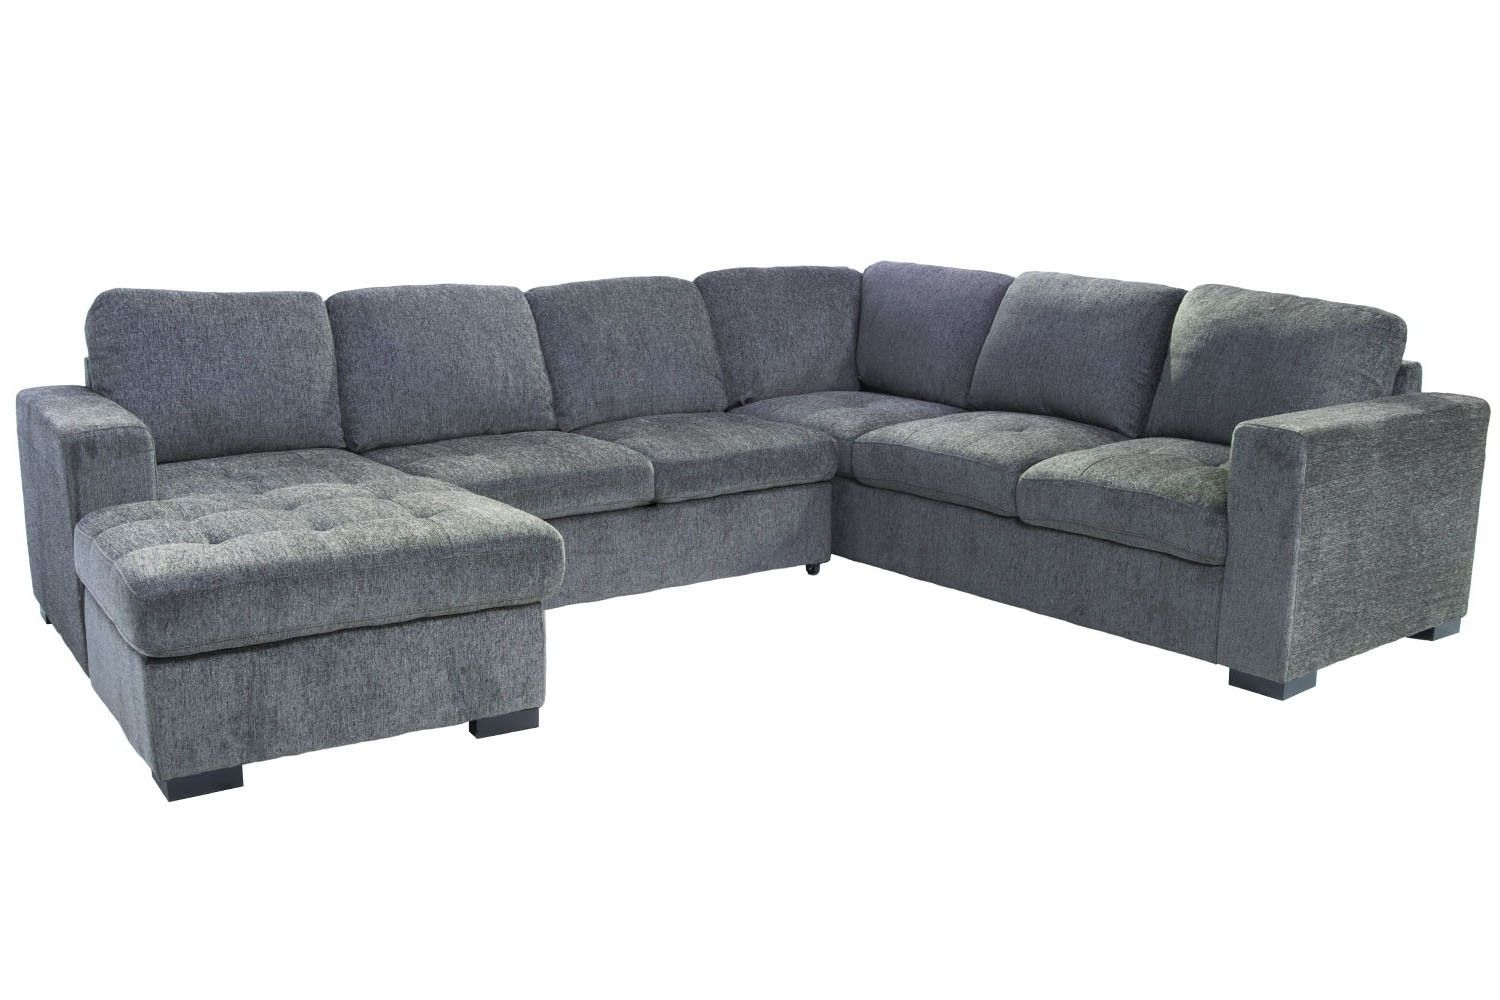 Mor Furniture for Less The Claire 3Piece RightFacing Chaise